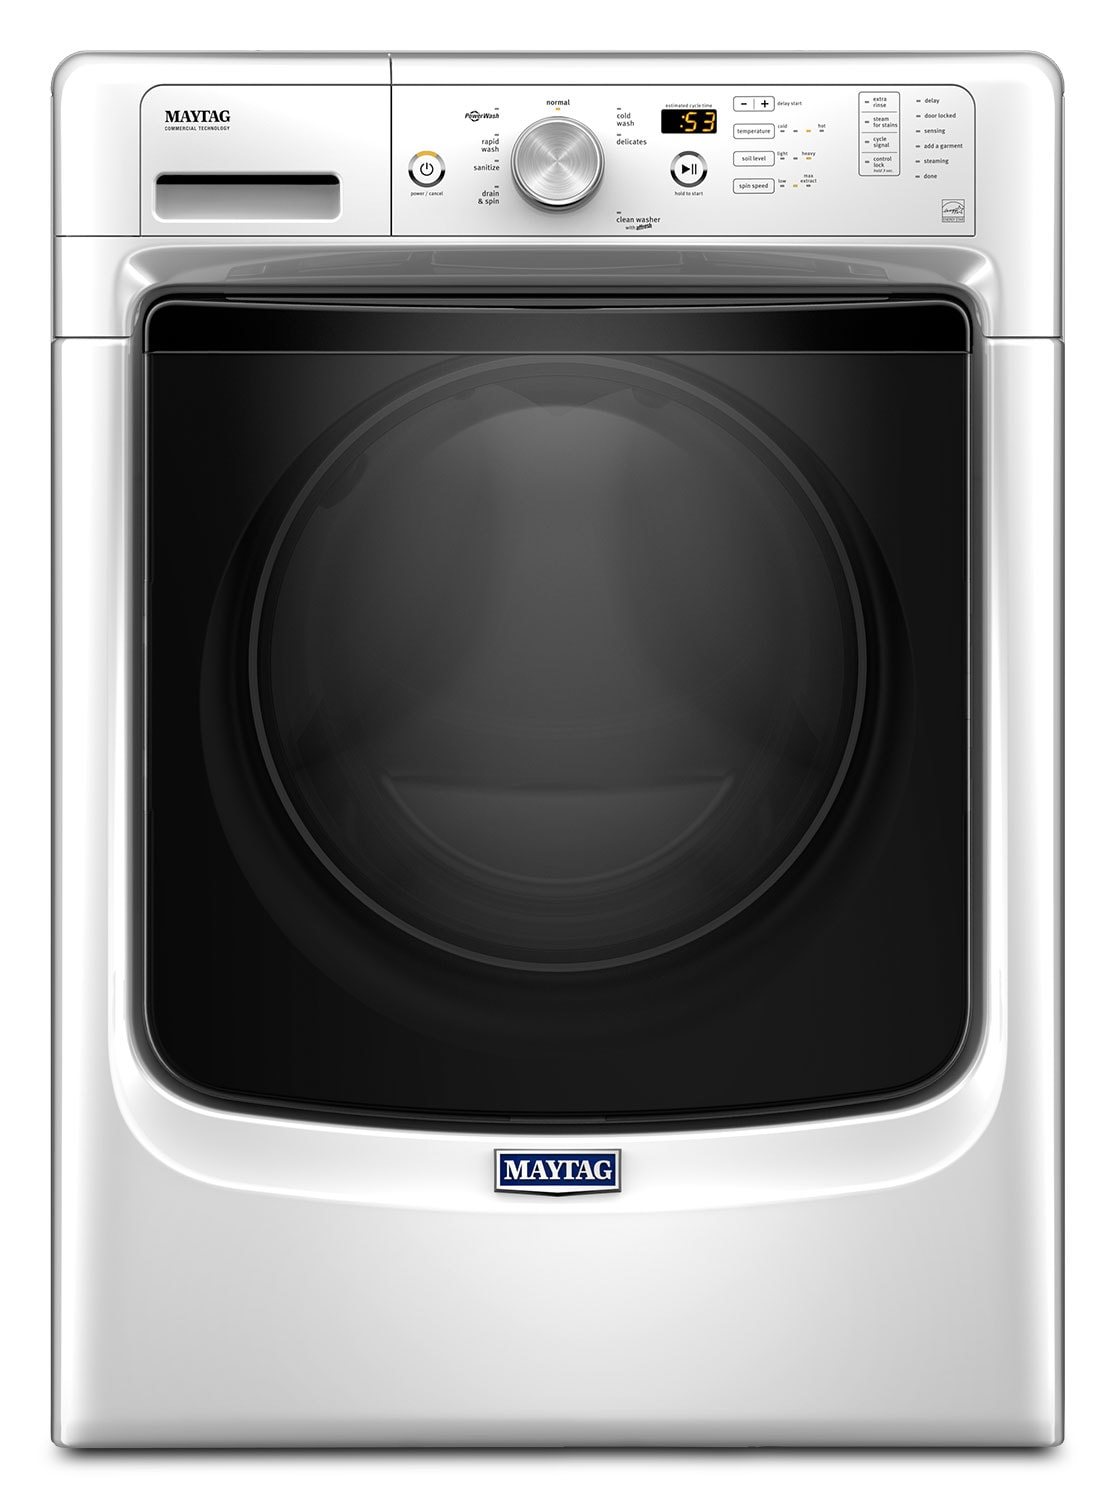 Maytag White Front-Load Washer (5.0 Cu. Ft. IEC) - MHW3500FW